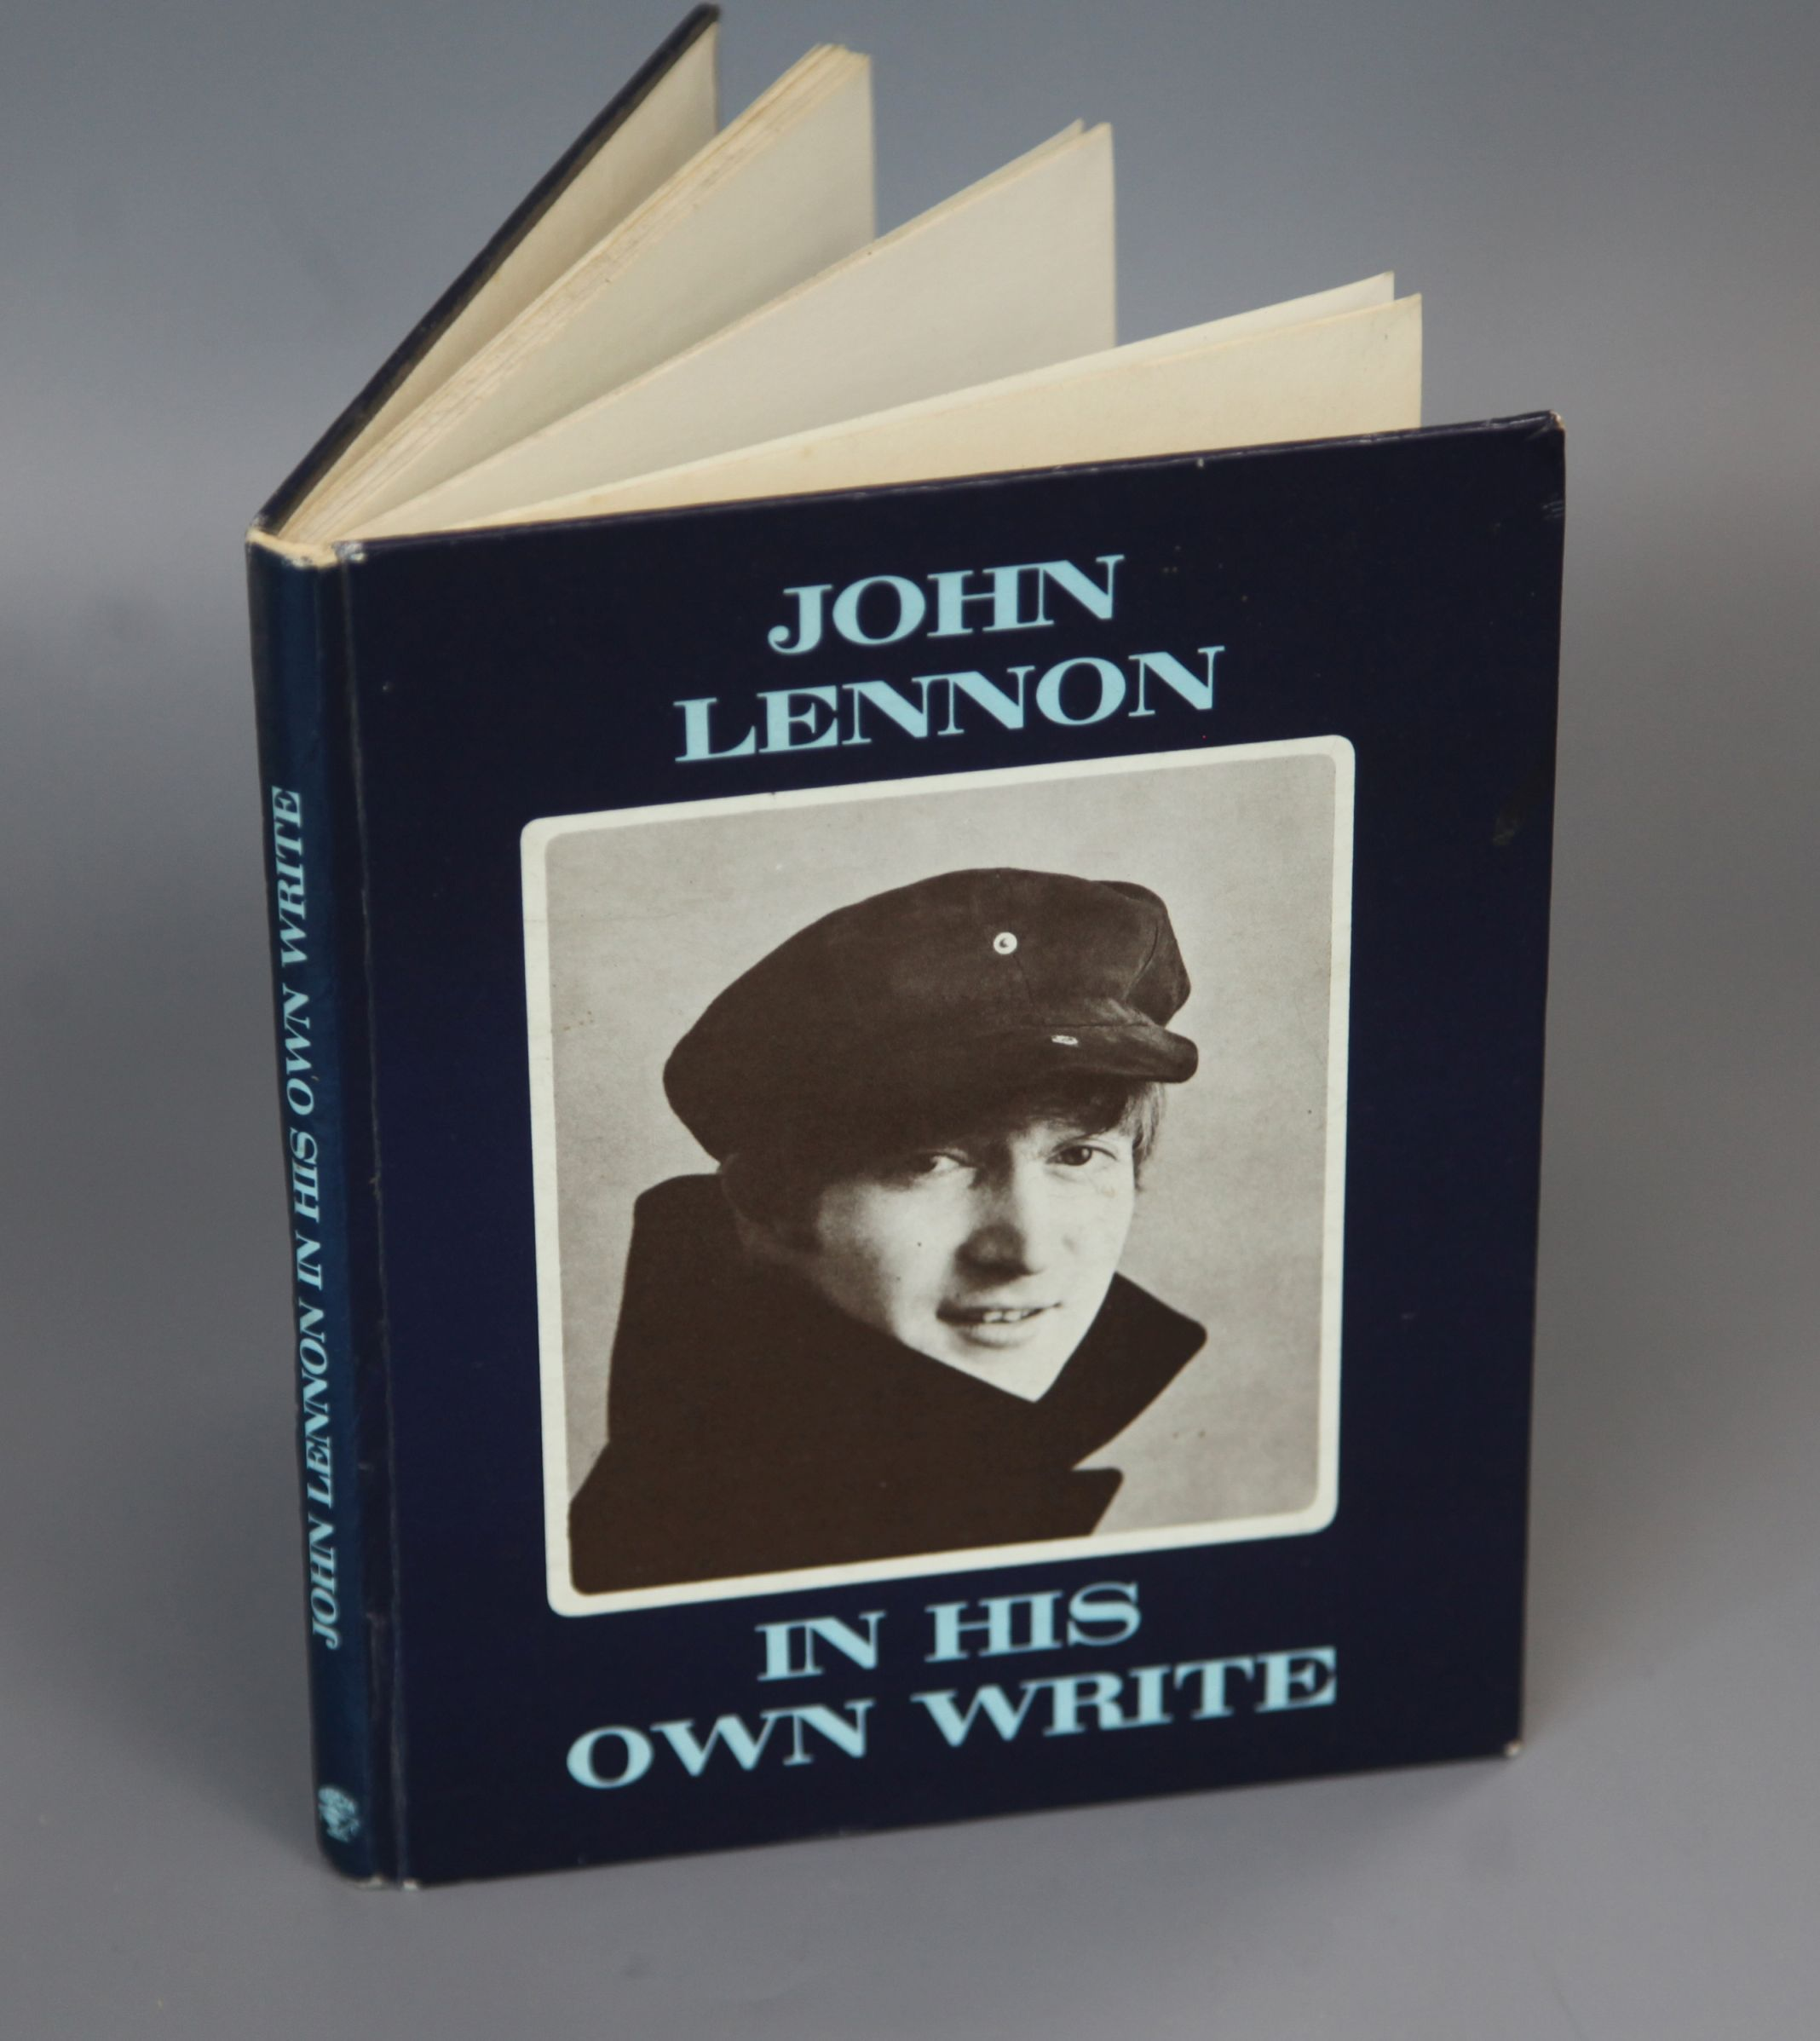 Lot 2A - Lennon, John - In His Own Write, original boards, 8vo, London 1964